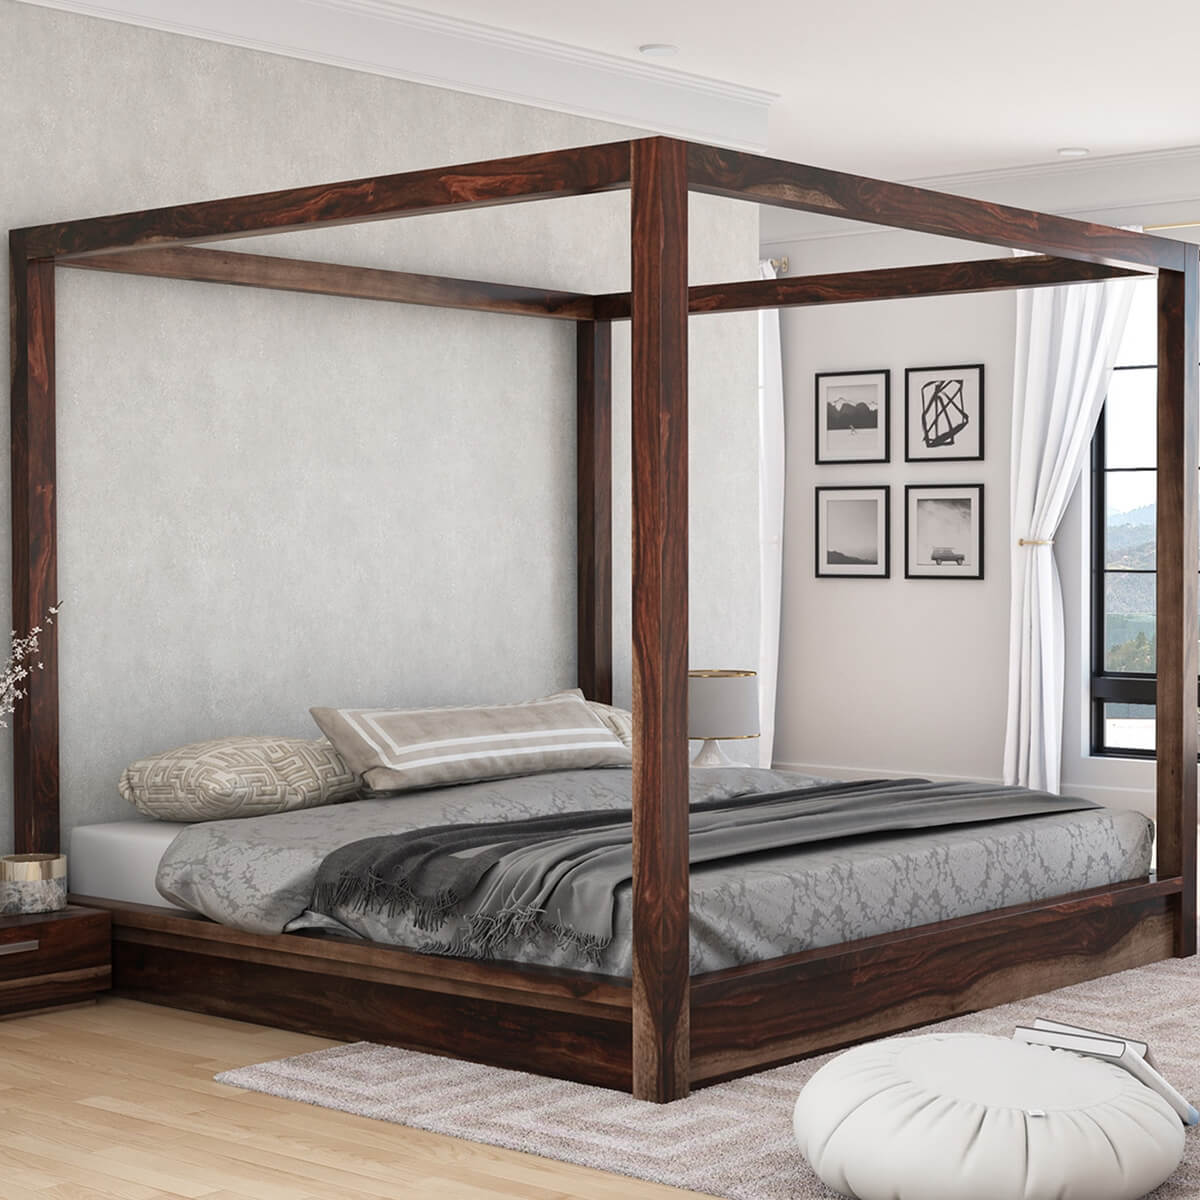 Hampshire rustic solid wood canopy bed